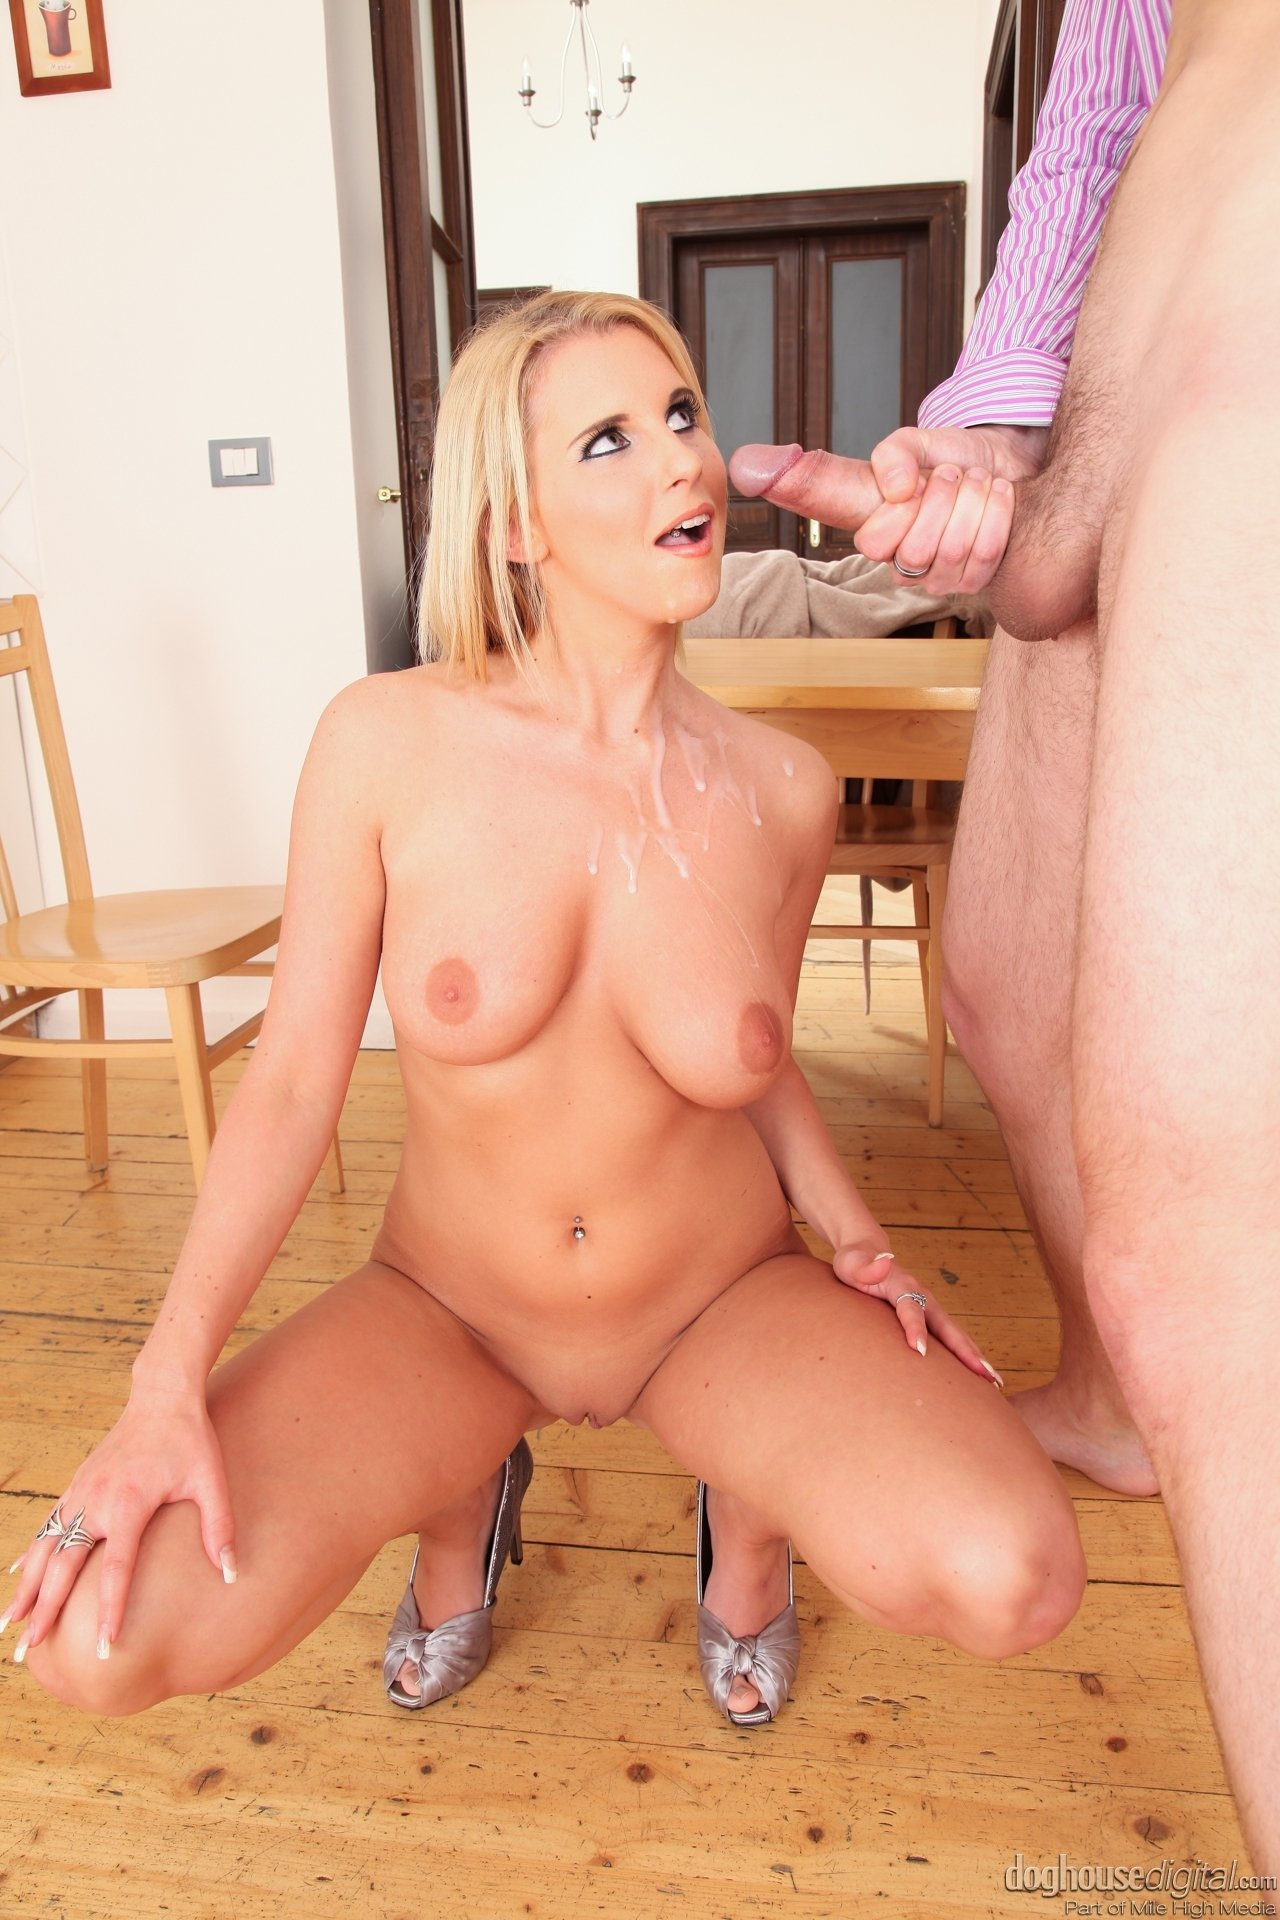 Gamaes girls loose strip Anal torment with shit squirting